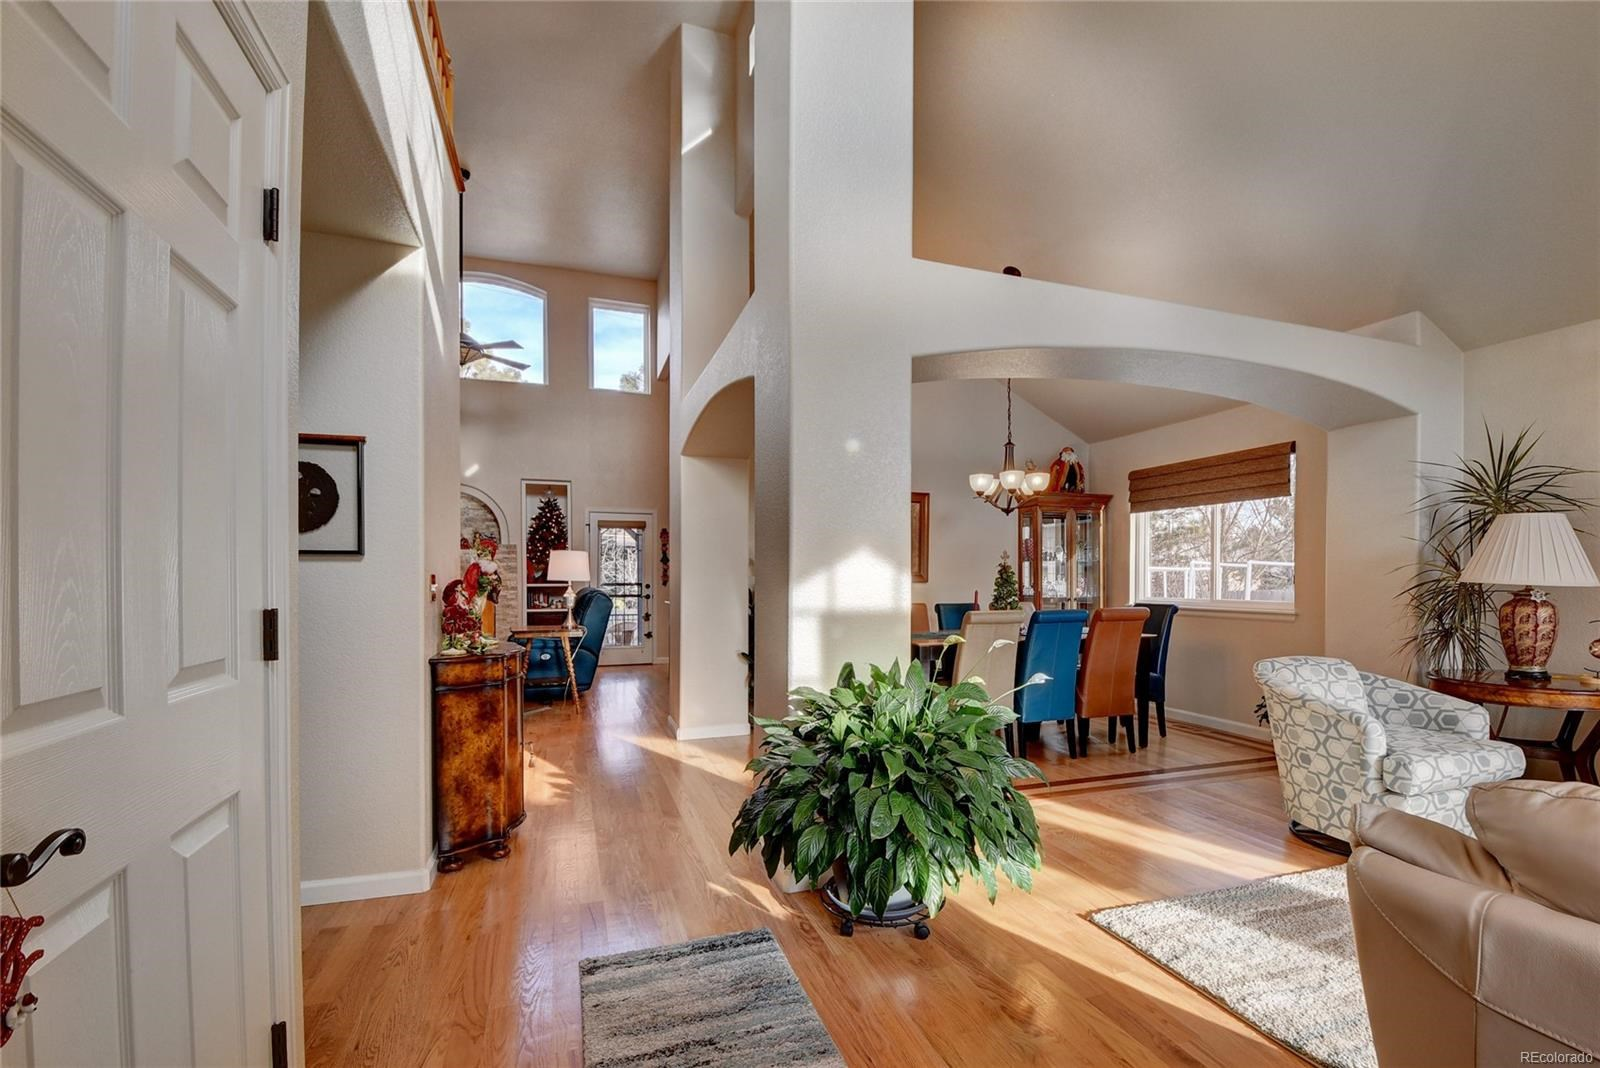 MLS# 9913436 - 3 - 5726 W 81st Place, Arvada, CO 80003